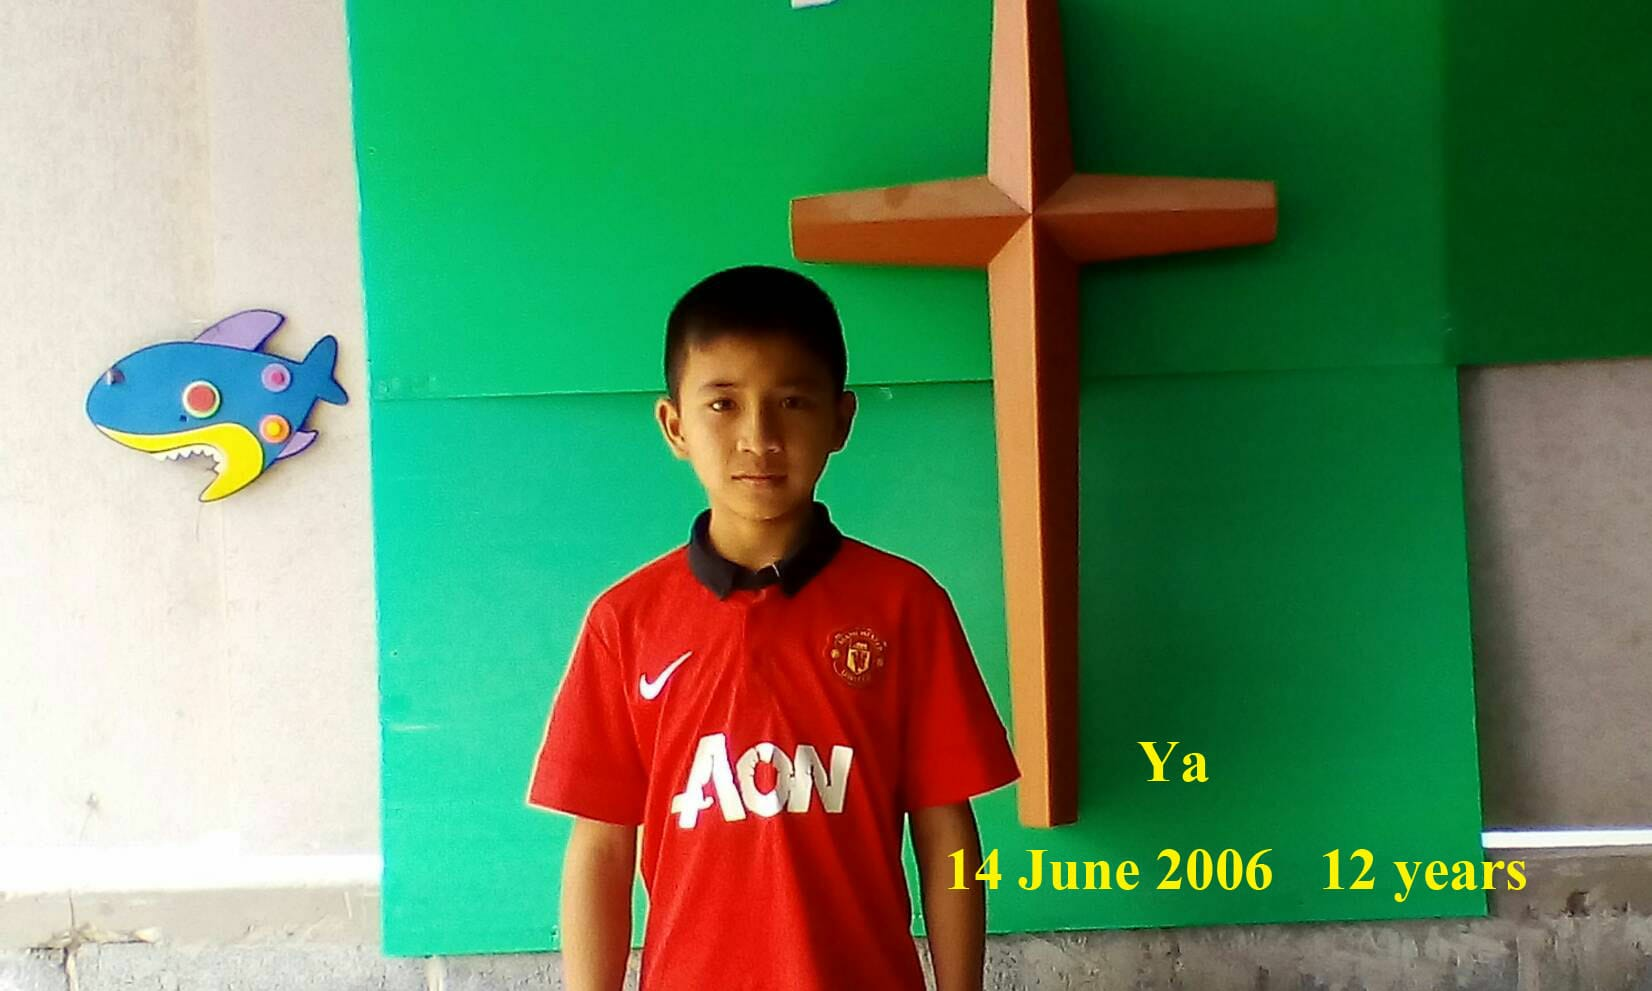 Ya (12 years old, boy)